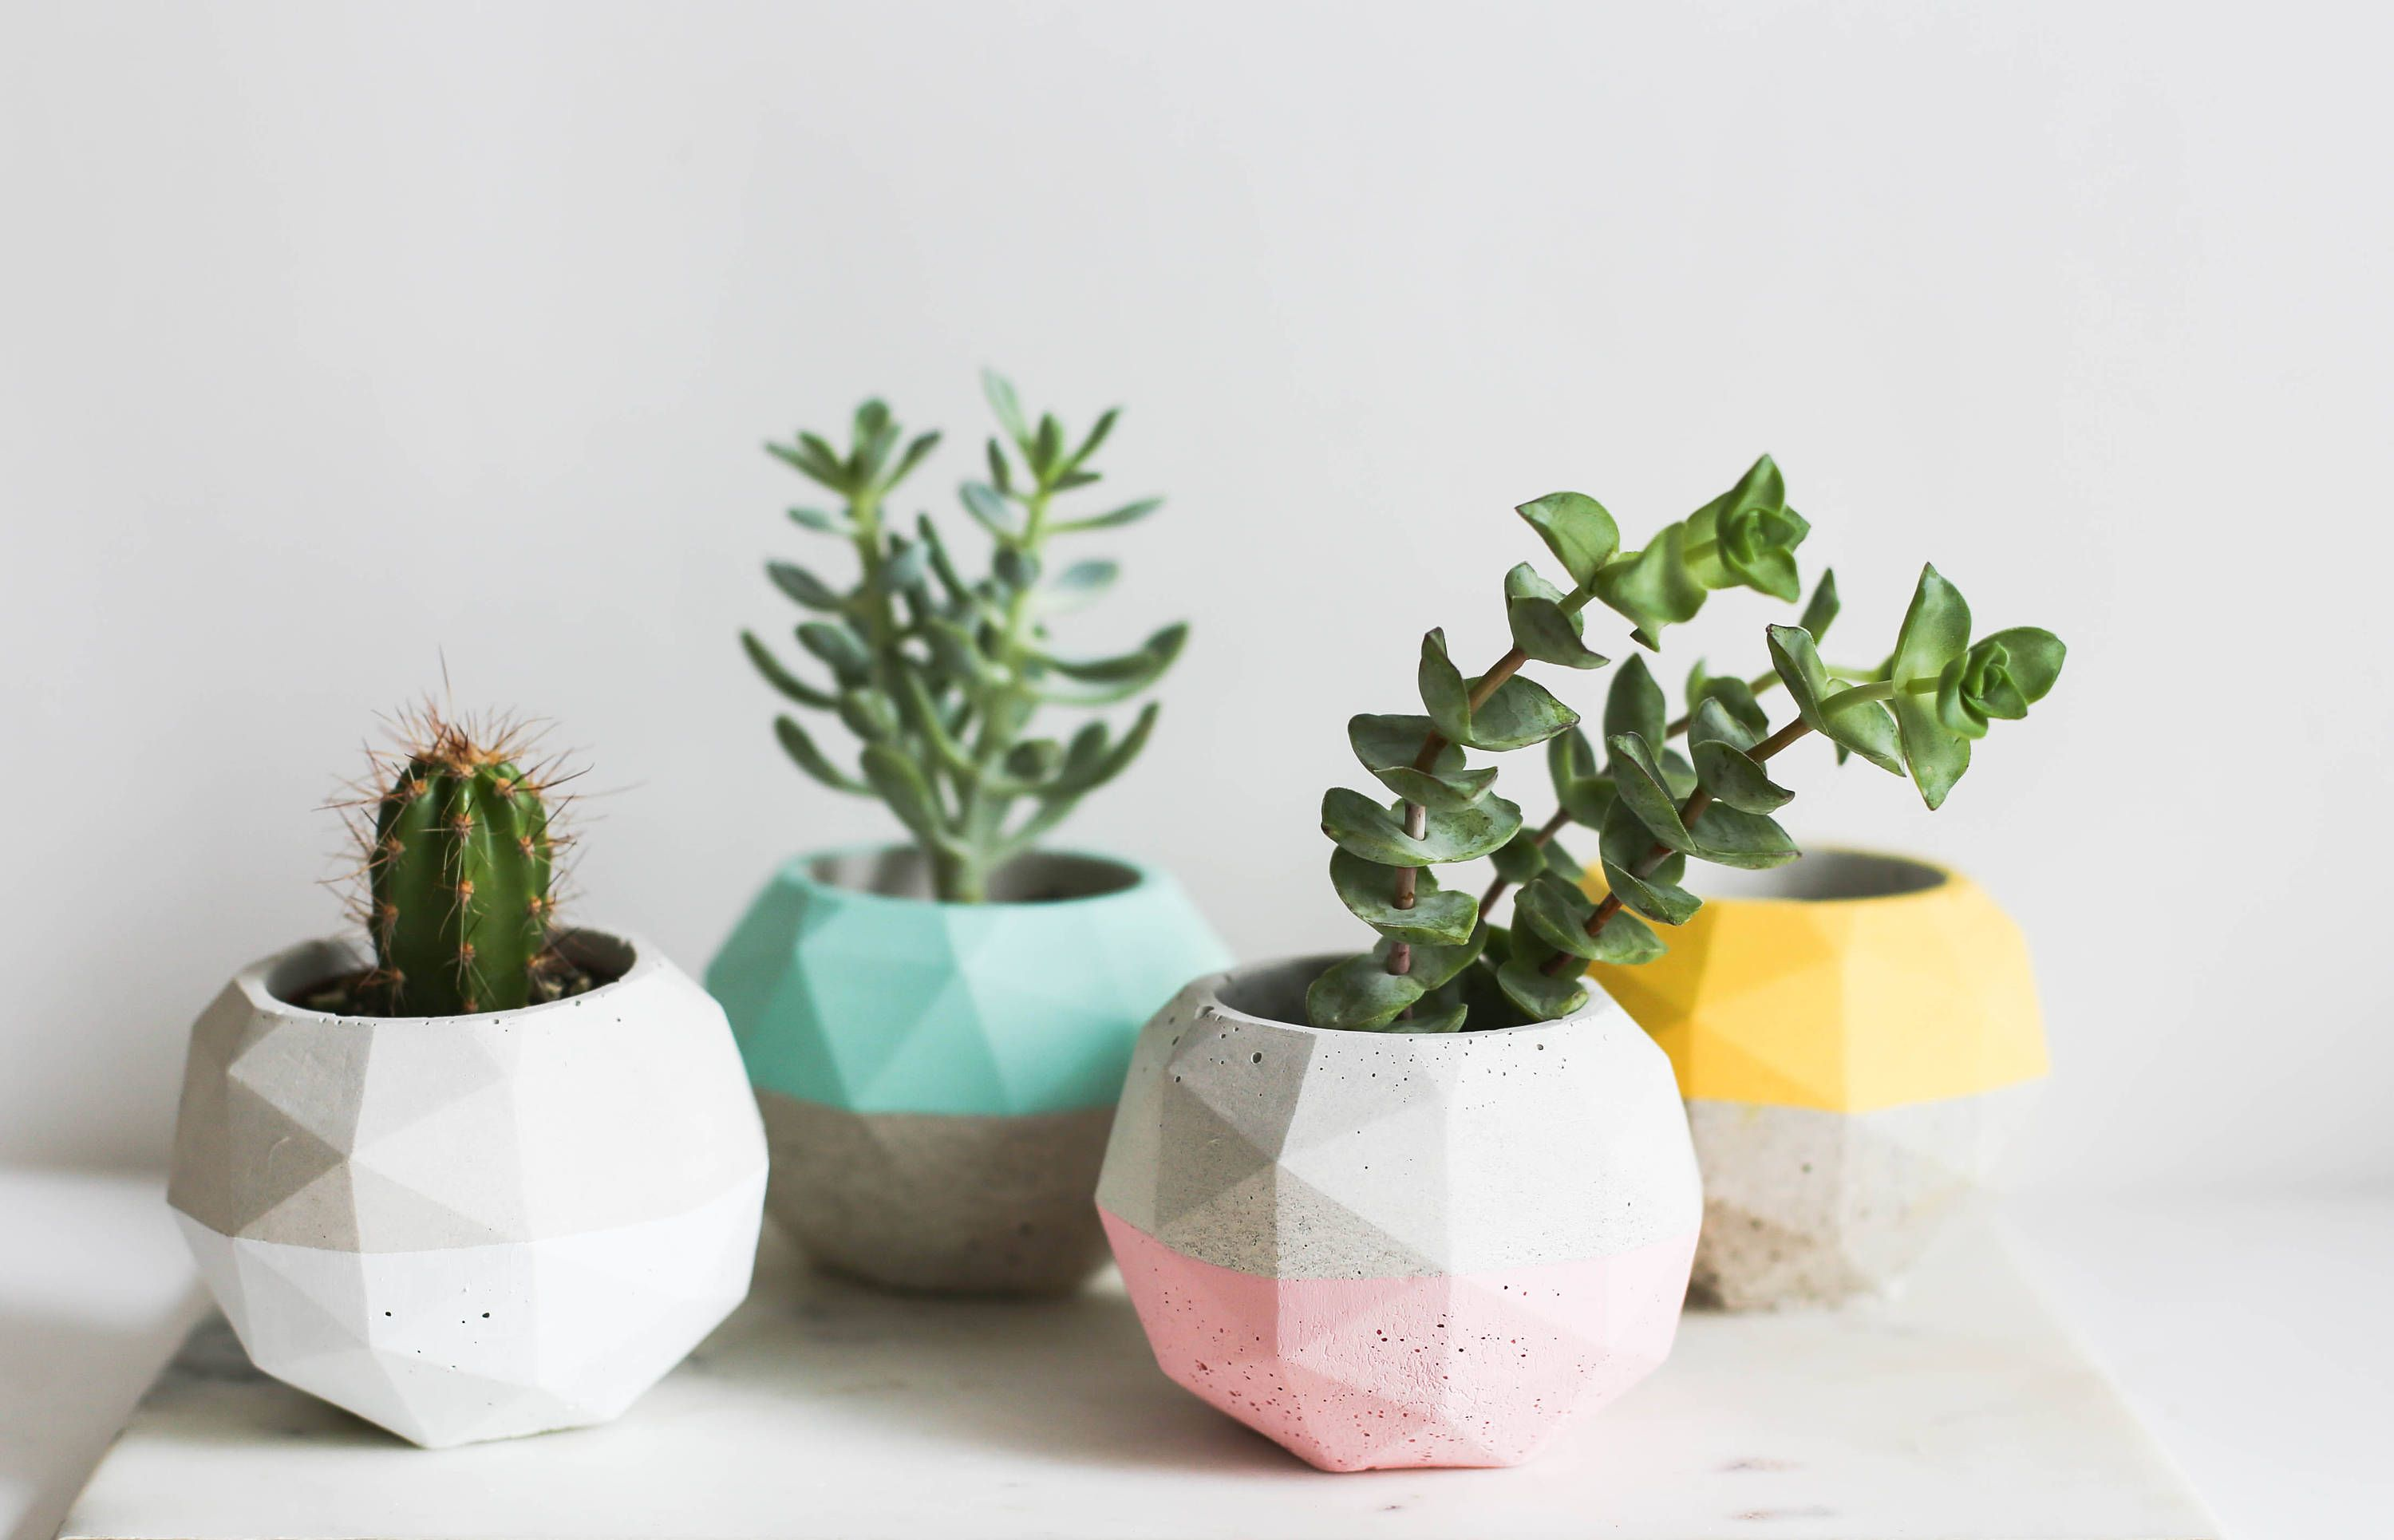 Planter Gift Geo Planter Large Succulent Planter Desk Plant Holder Desk Decor Geometric Planter Colorful Planter Succulent Garden Colorful Planters Planter Gift Desk Plants